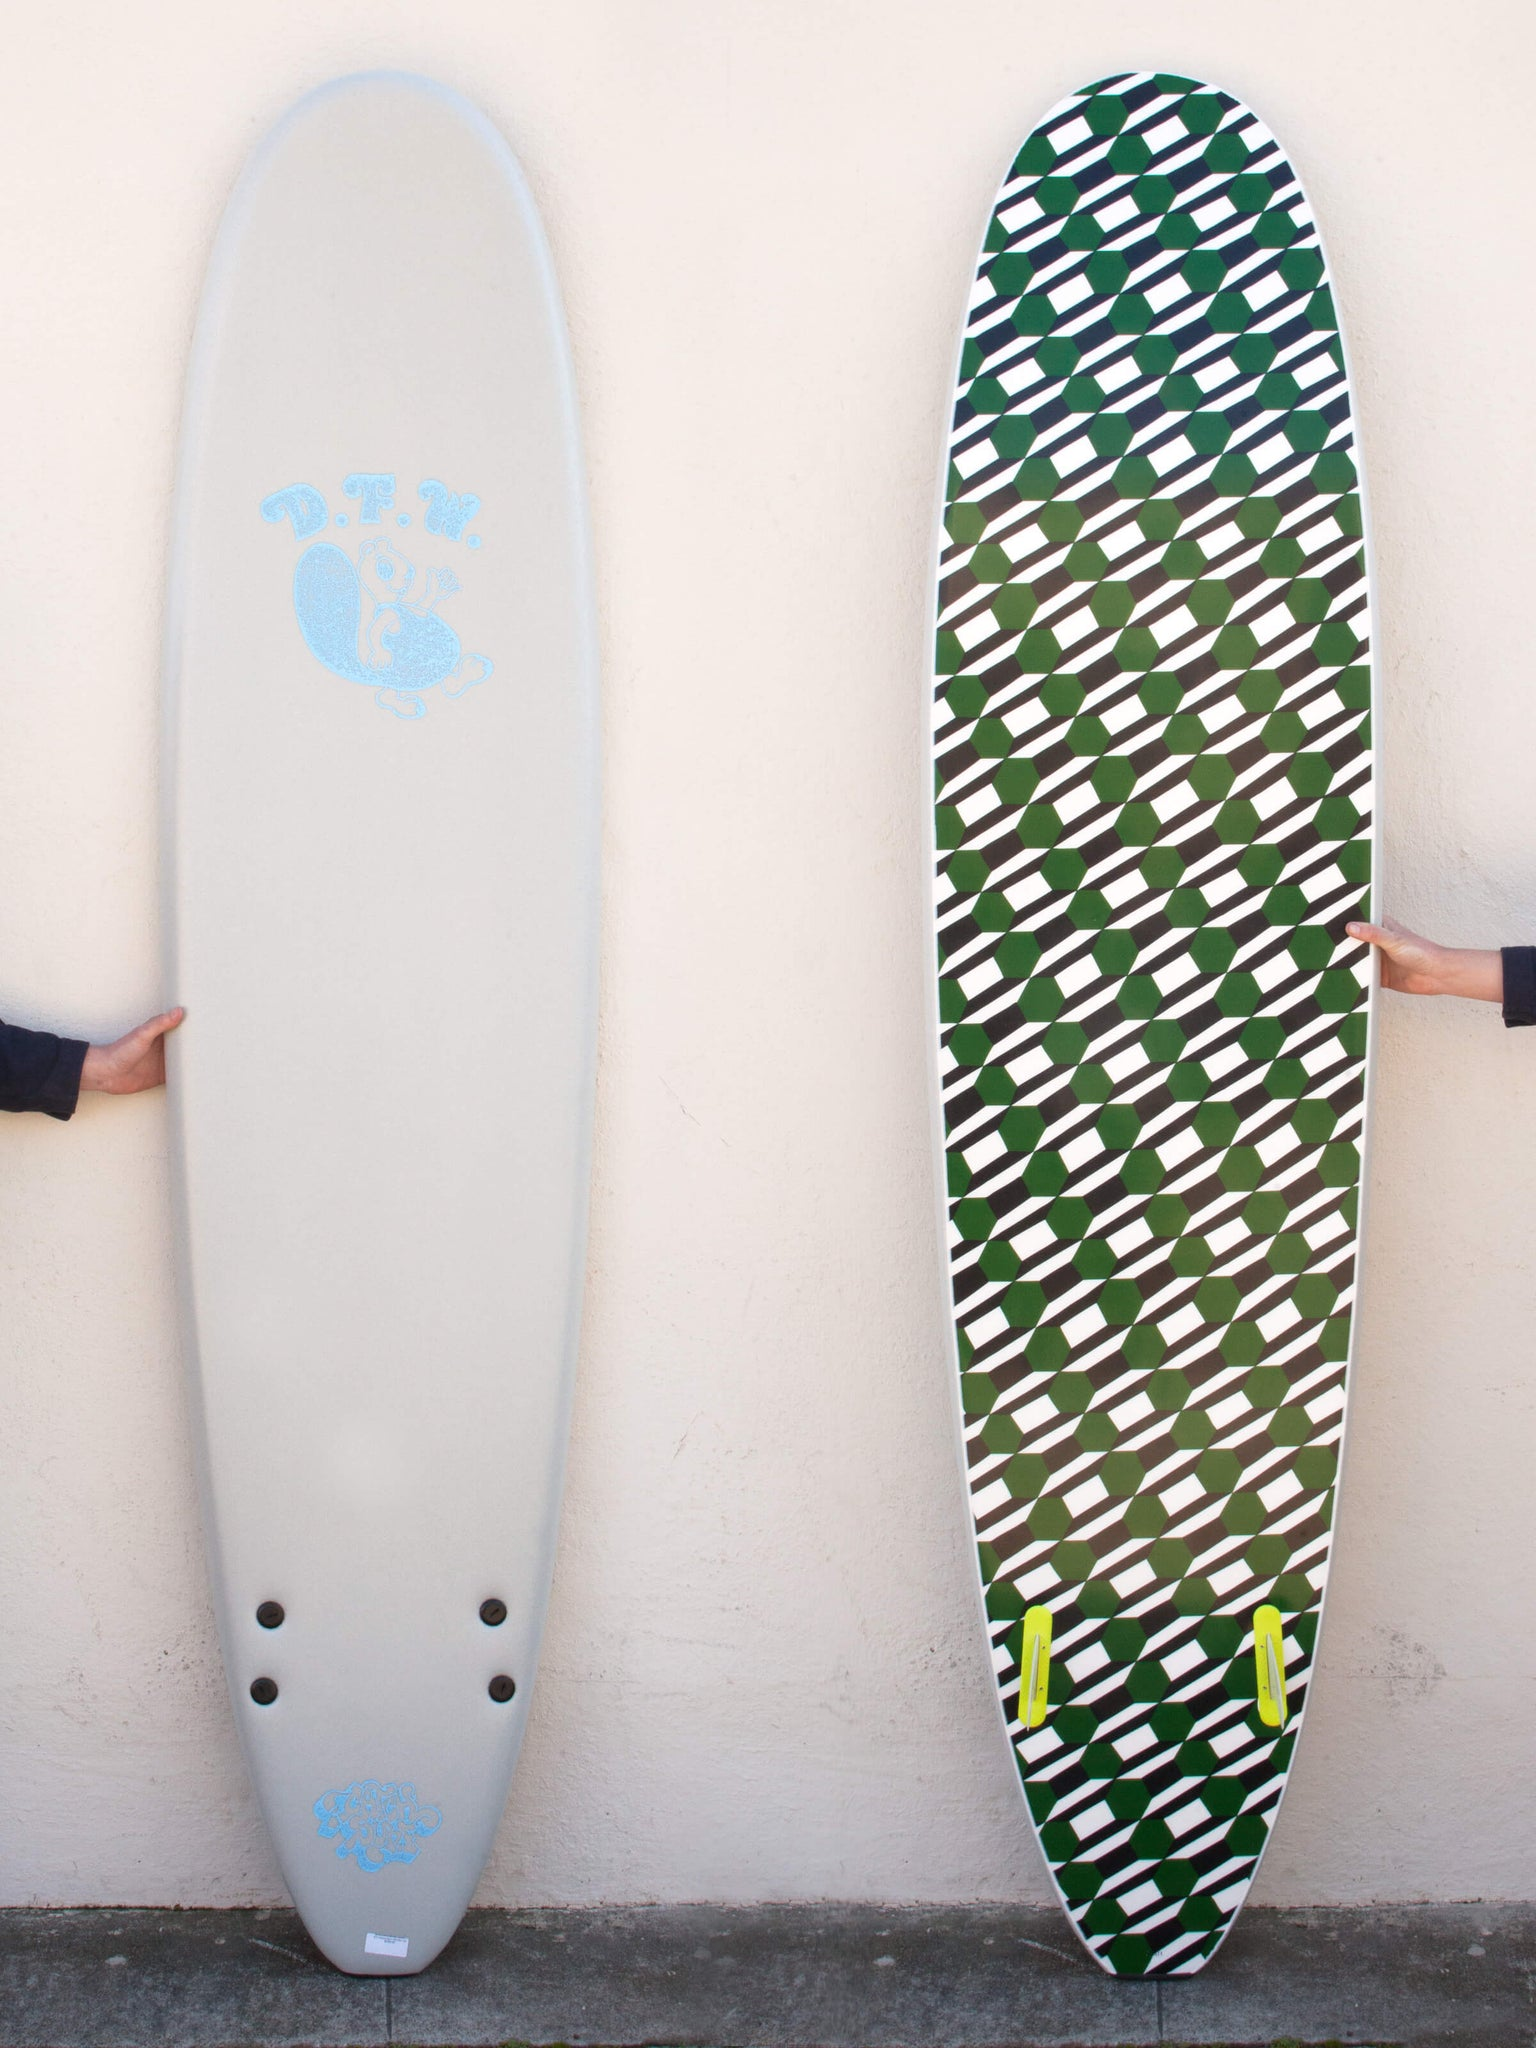 8'0 Odysea Log x DFW